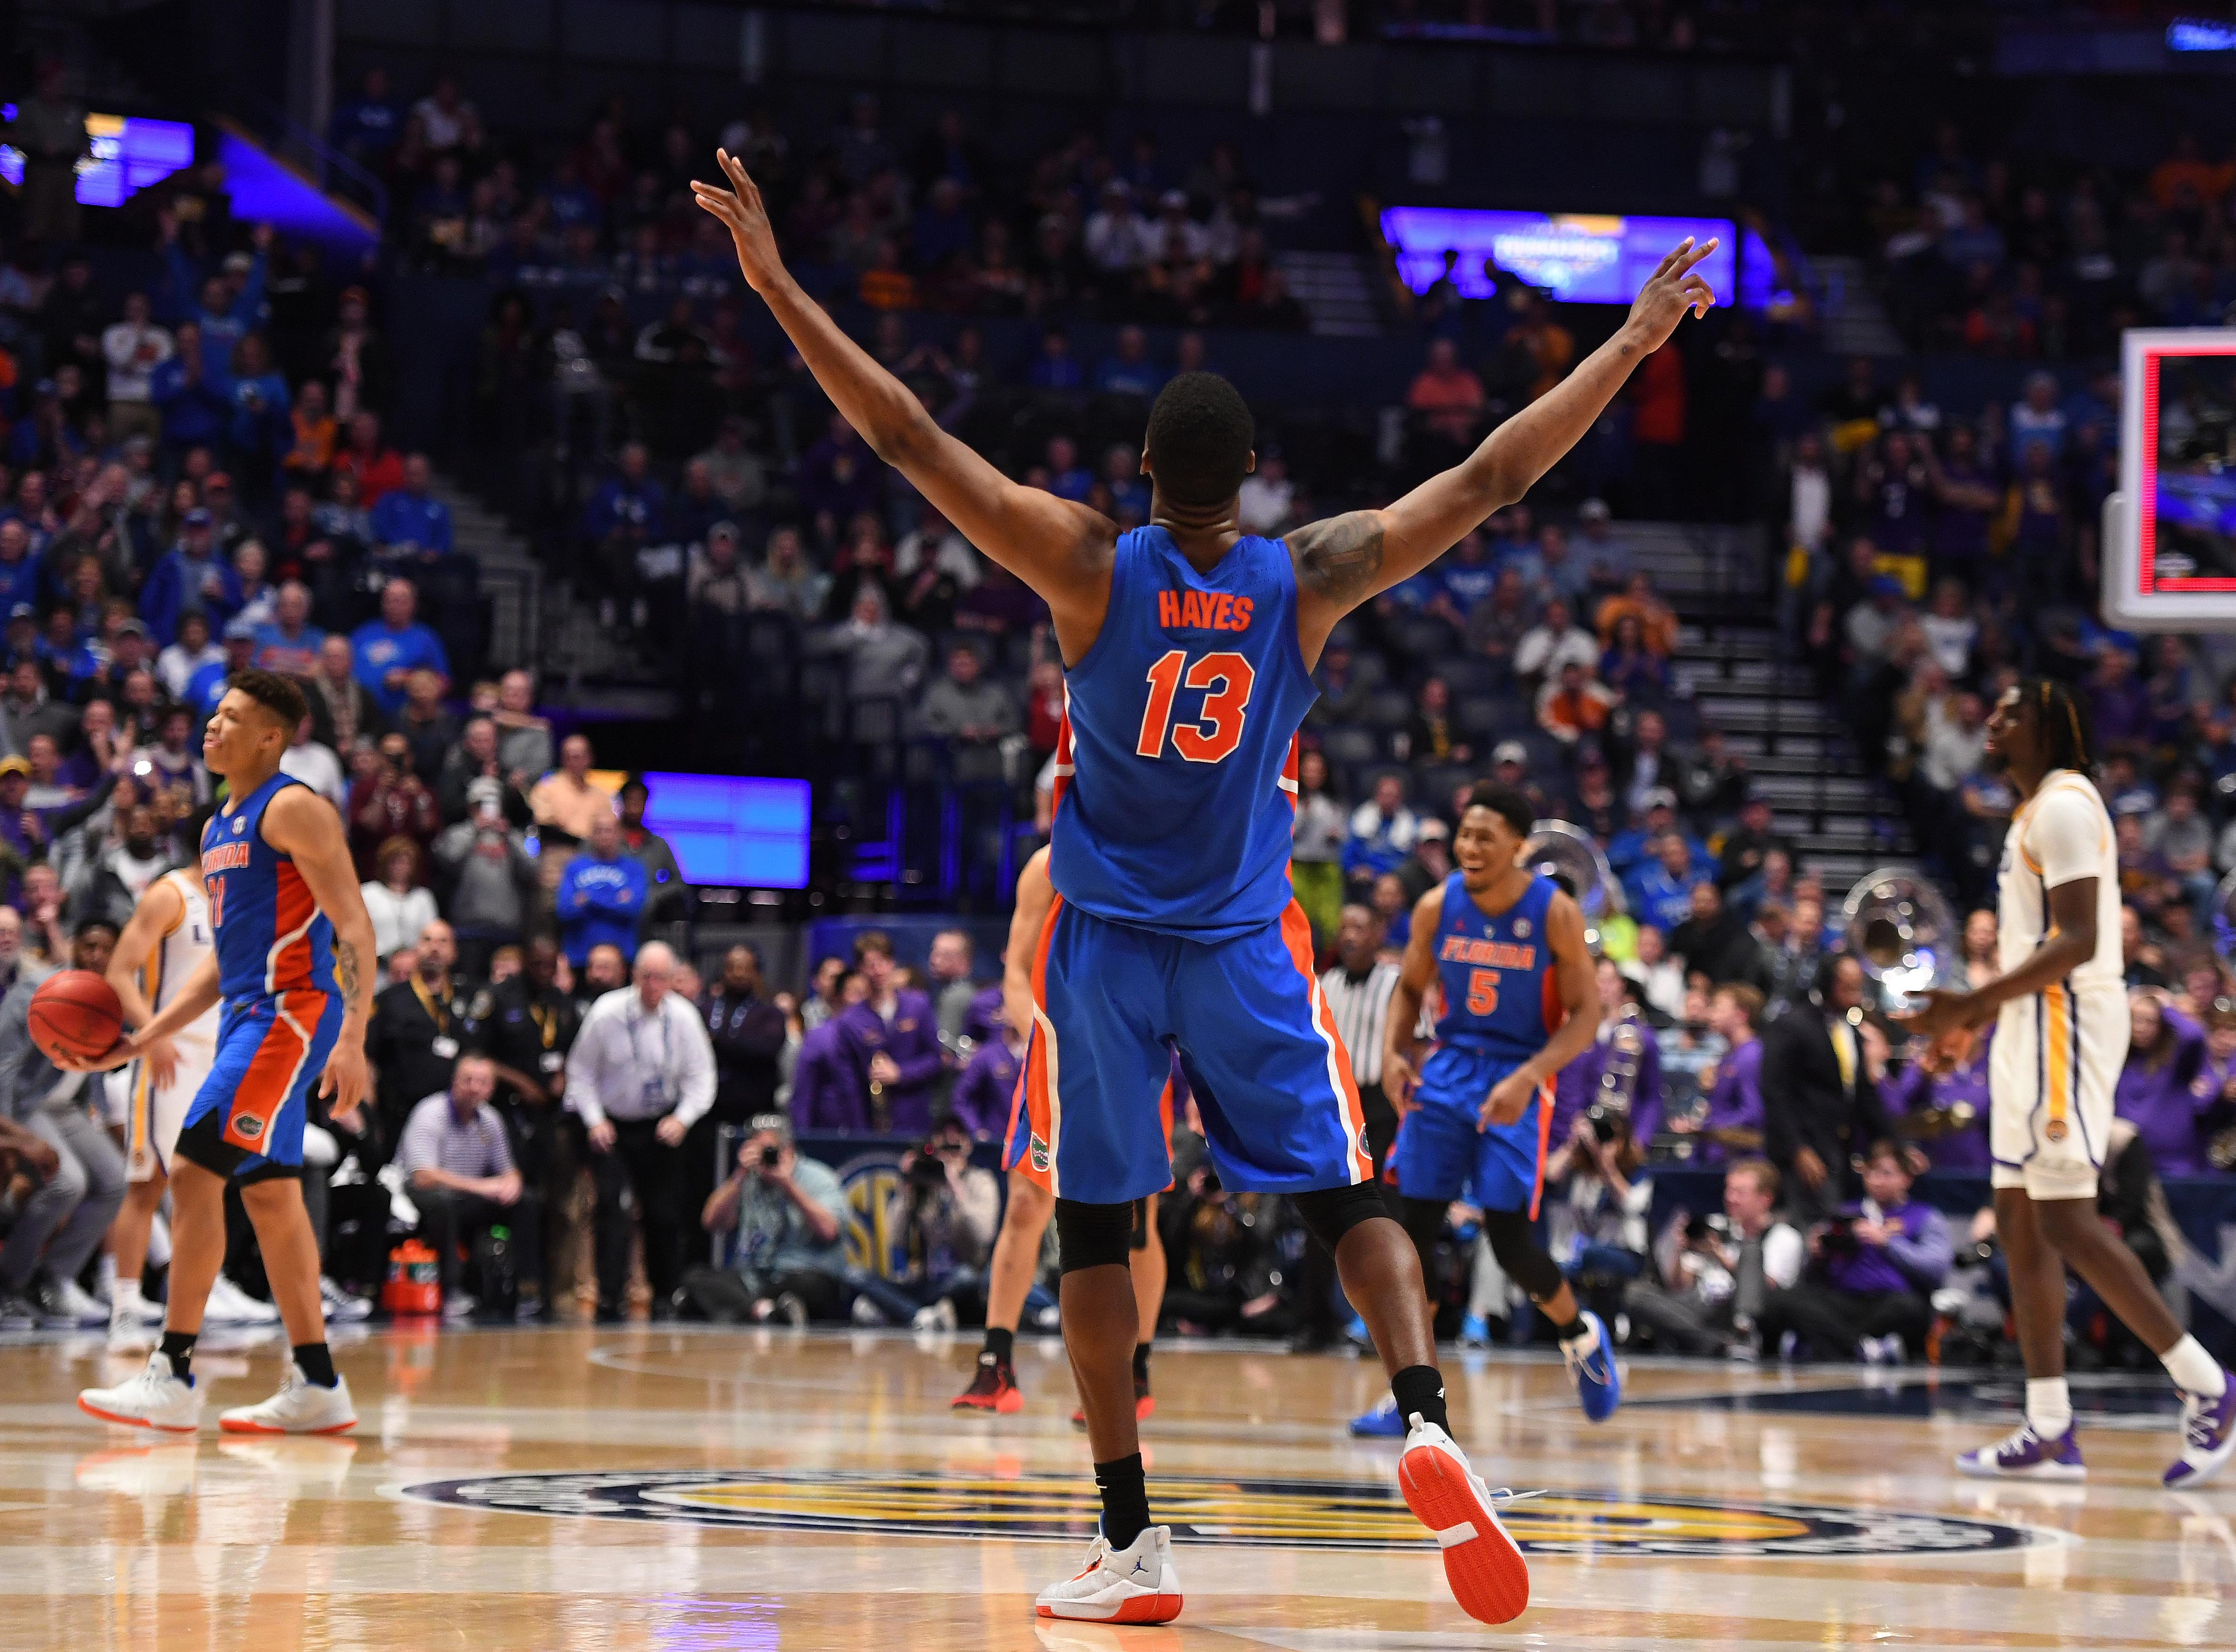 Mar 15, 2019; Nashville, TN, USA; Florida Gators center Kevarrius Hayes (13) celebrates after defeating the LSU Tigers in the SEC conference tournament at Bridgestone Arena. Mandatory Credit: Christopher Hanewinckel-USA TODAY Sports